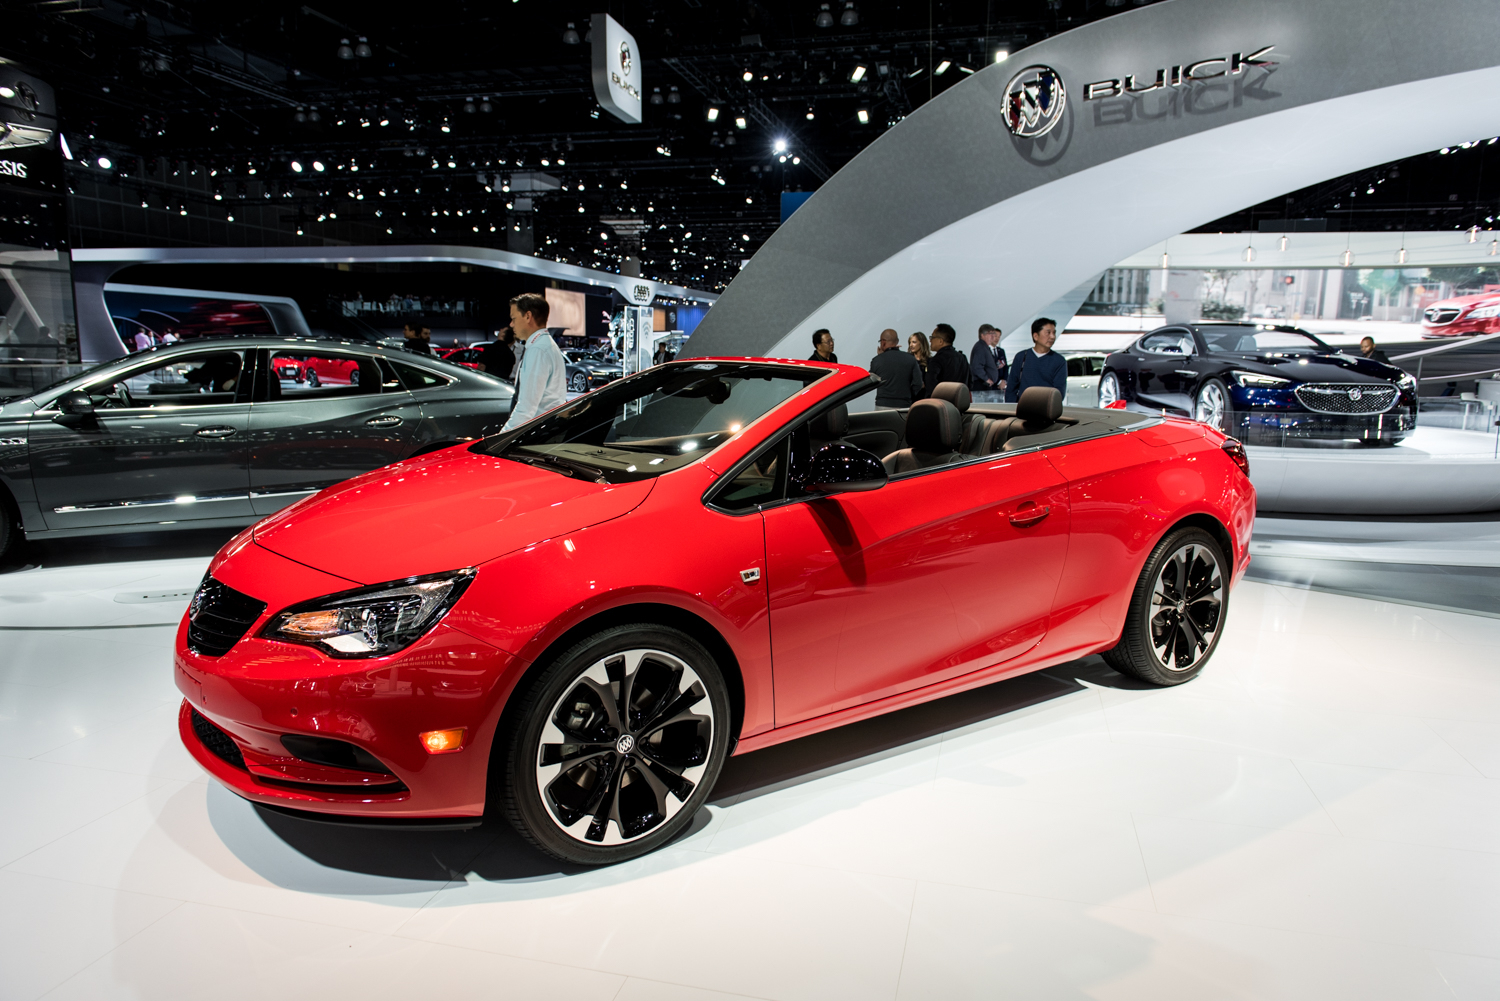 Buick Cascada Discount Cuts Price 16 Percent September 2019 New 2021 Buick Cascada Lease, Trim Levels, Manual